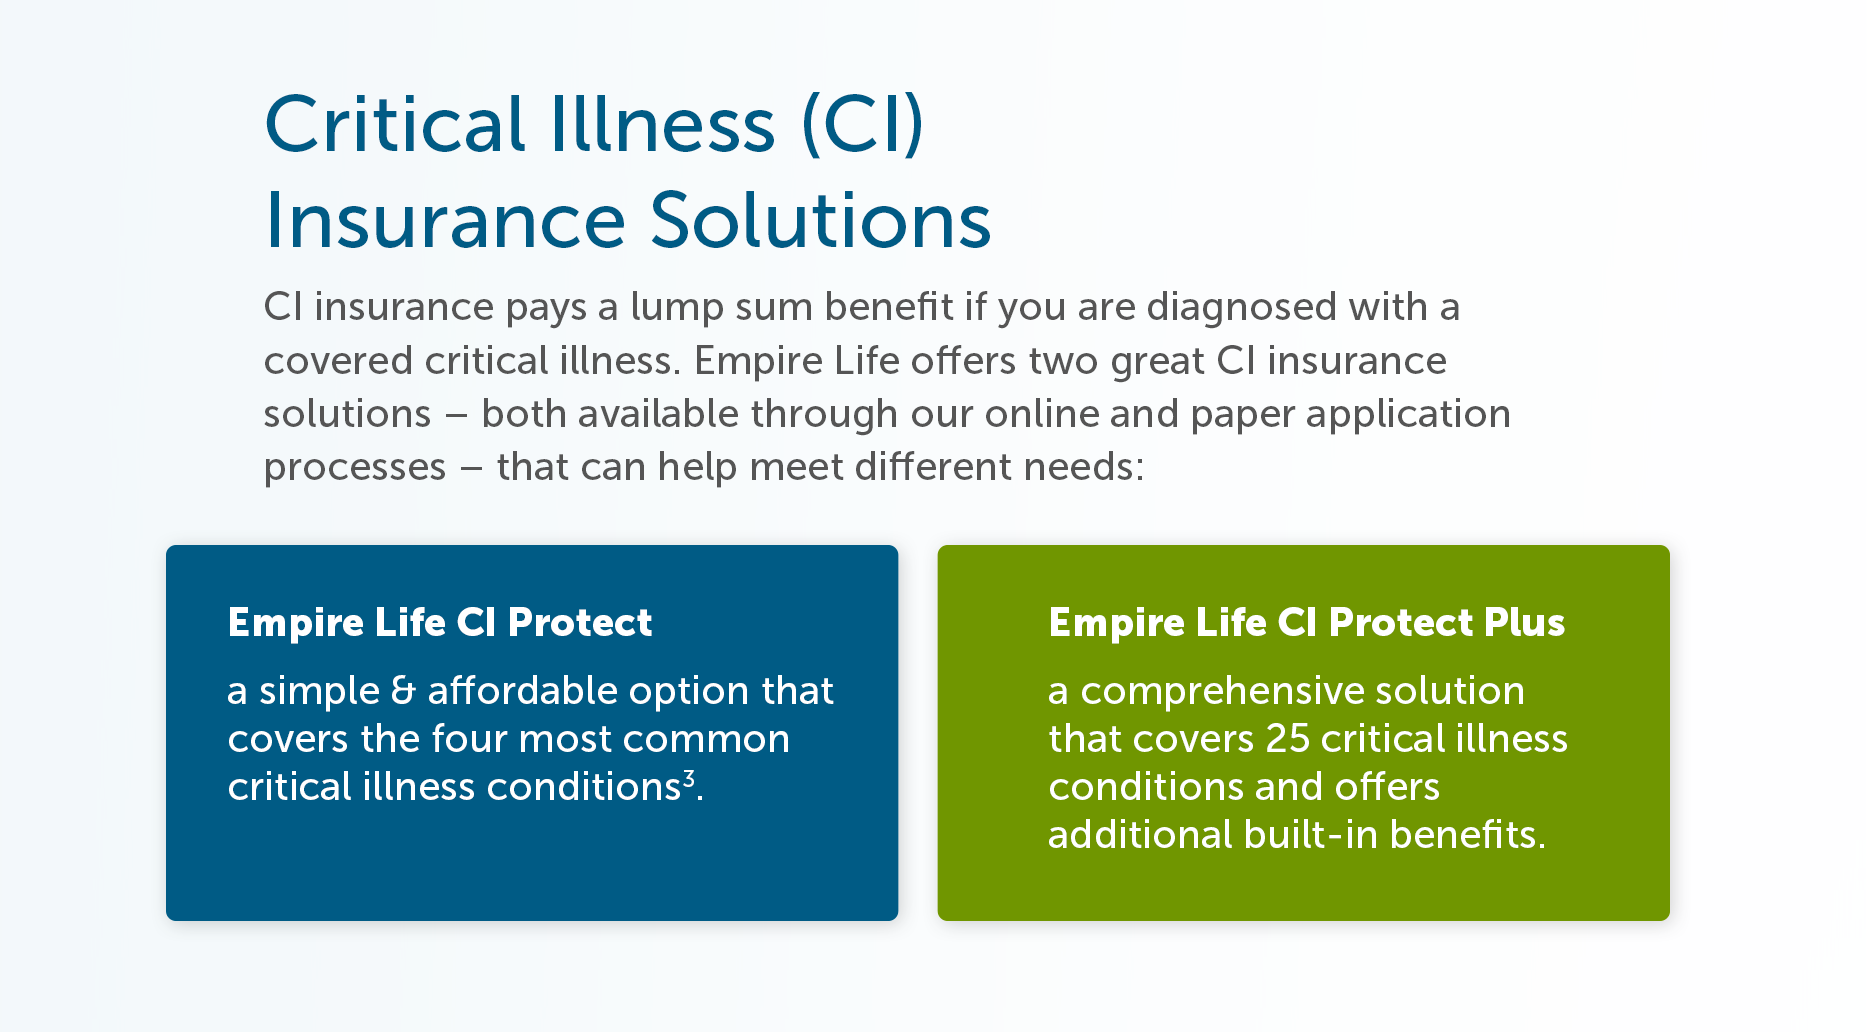 Critical Illness (CI) Insurance Solutions  CI insurance pays a lump sum benefit if you are diagnosed with a covered critical illness. Empire Life offers two great CI insurance solutions -- both available through our online and paper application processes -- that can help meet different needs: Empire Life CI Protect –  a simple & affordable option that covers the four most common critical illness conditions3. Empire Life CI Protect Plus – a comprehensive solution that covers 25 critical illness conditions and offers additional built-in benefits.